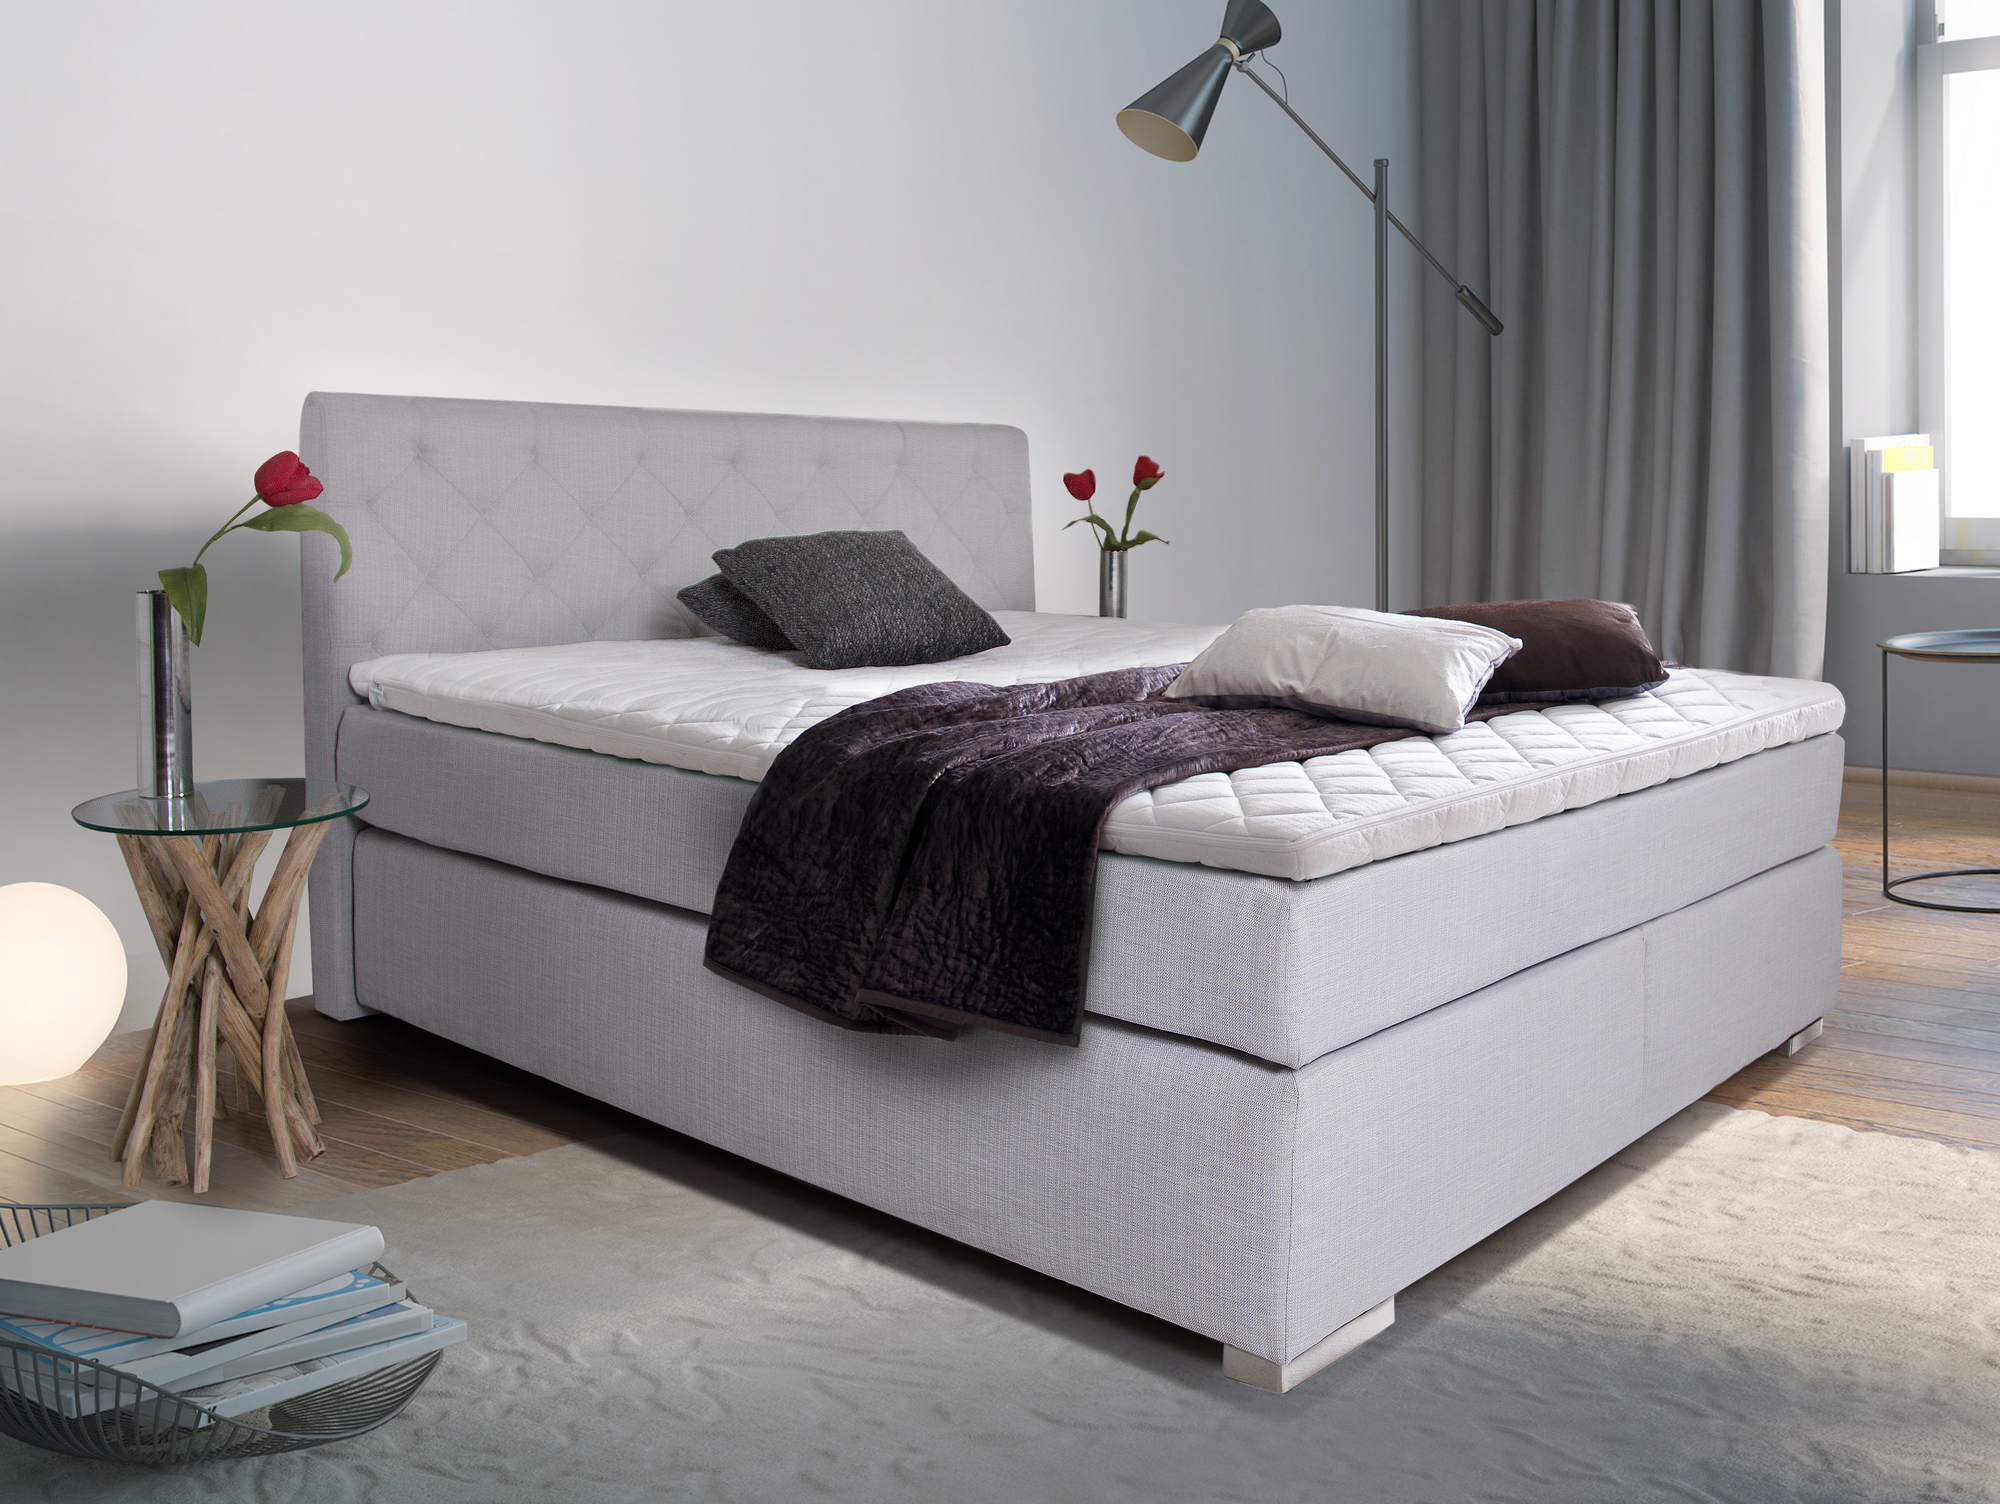 premium boxspringbett inkl kopfteil 100 x 200 cm grau h rtegrad 3. Black Bedroom Furniture Sets. Home Design Ideas